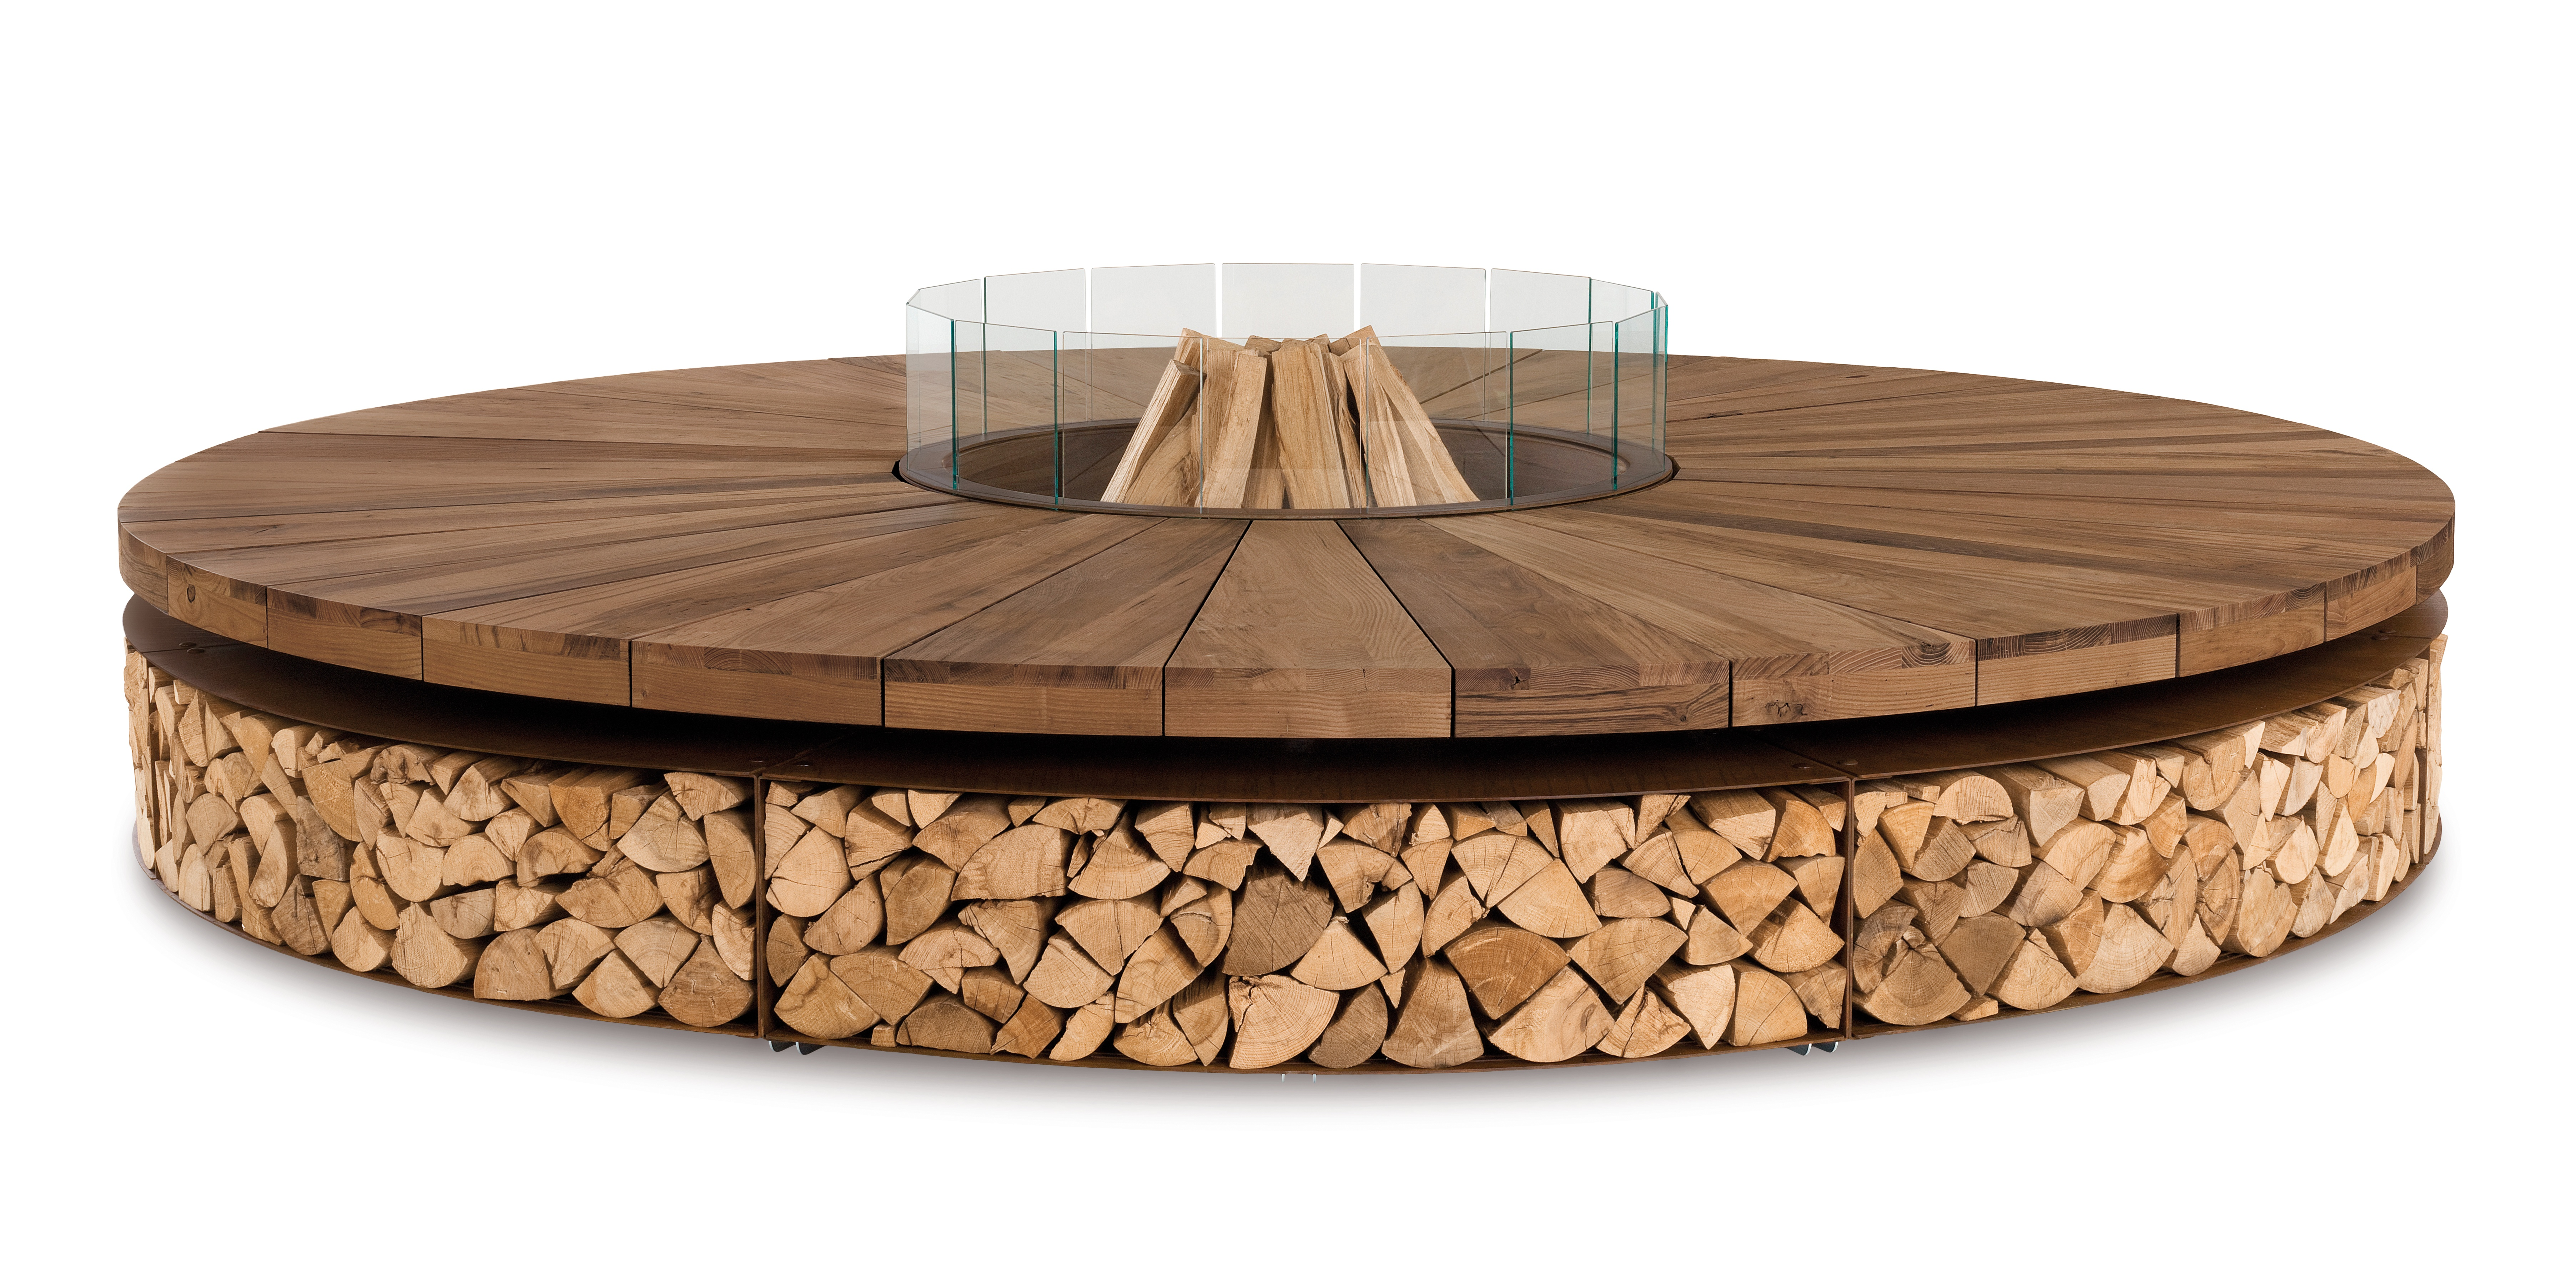 The sculptural, outdoor wood-burning Artu' firepit is crafted from steel and reclaimed chestnut wood.